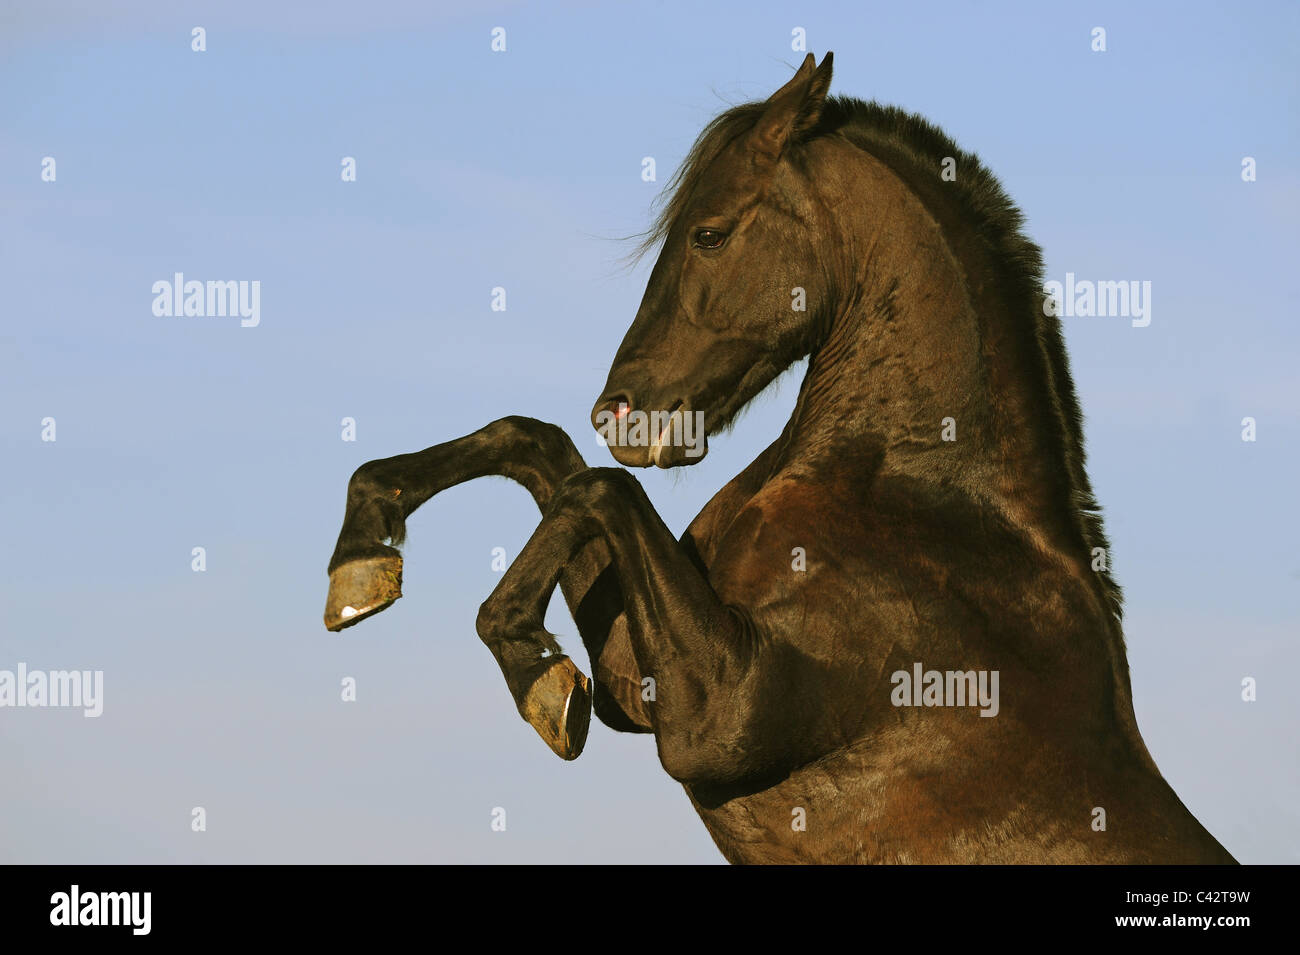 Domestic Horse (Equus ferus caballus), mix between Arabian and Barb. Black gelding rearing. Germany. - Stock Image